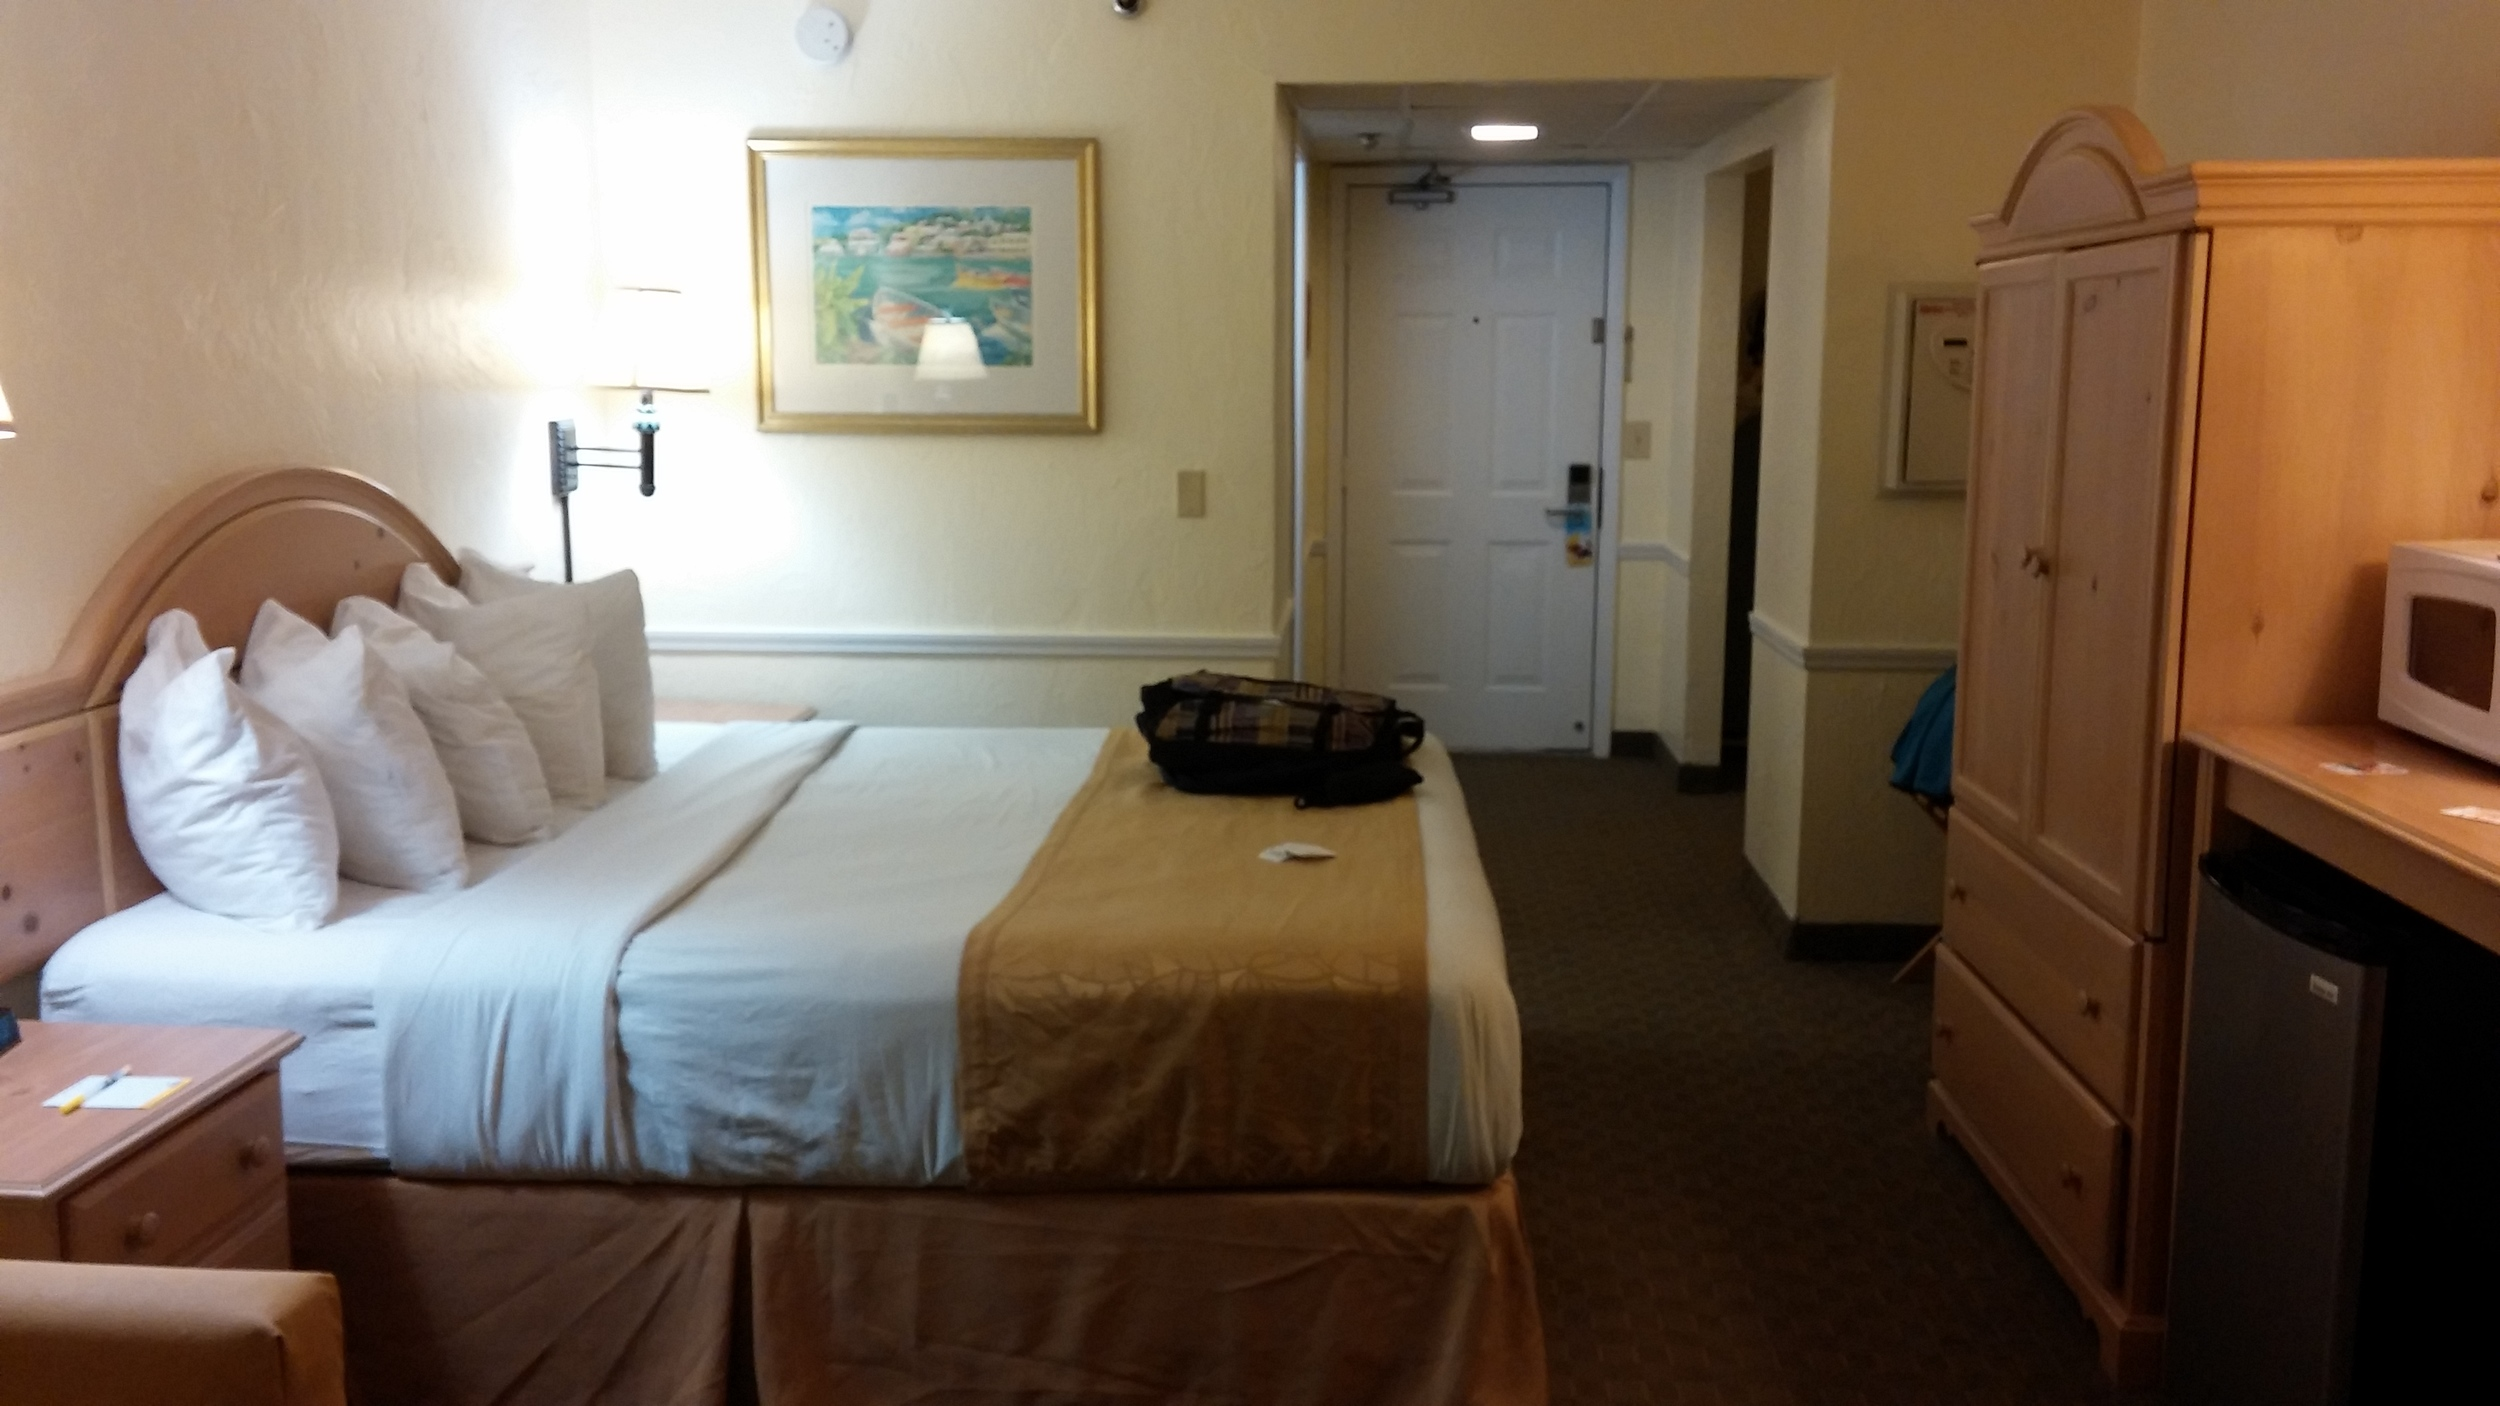 2016-01-14 Day's Inn, Daytona Beach FL 6.jpg